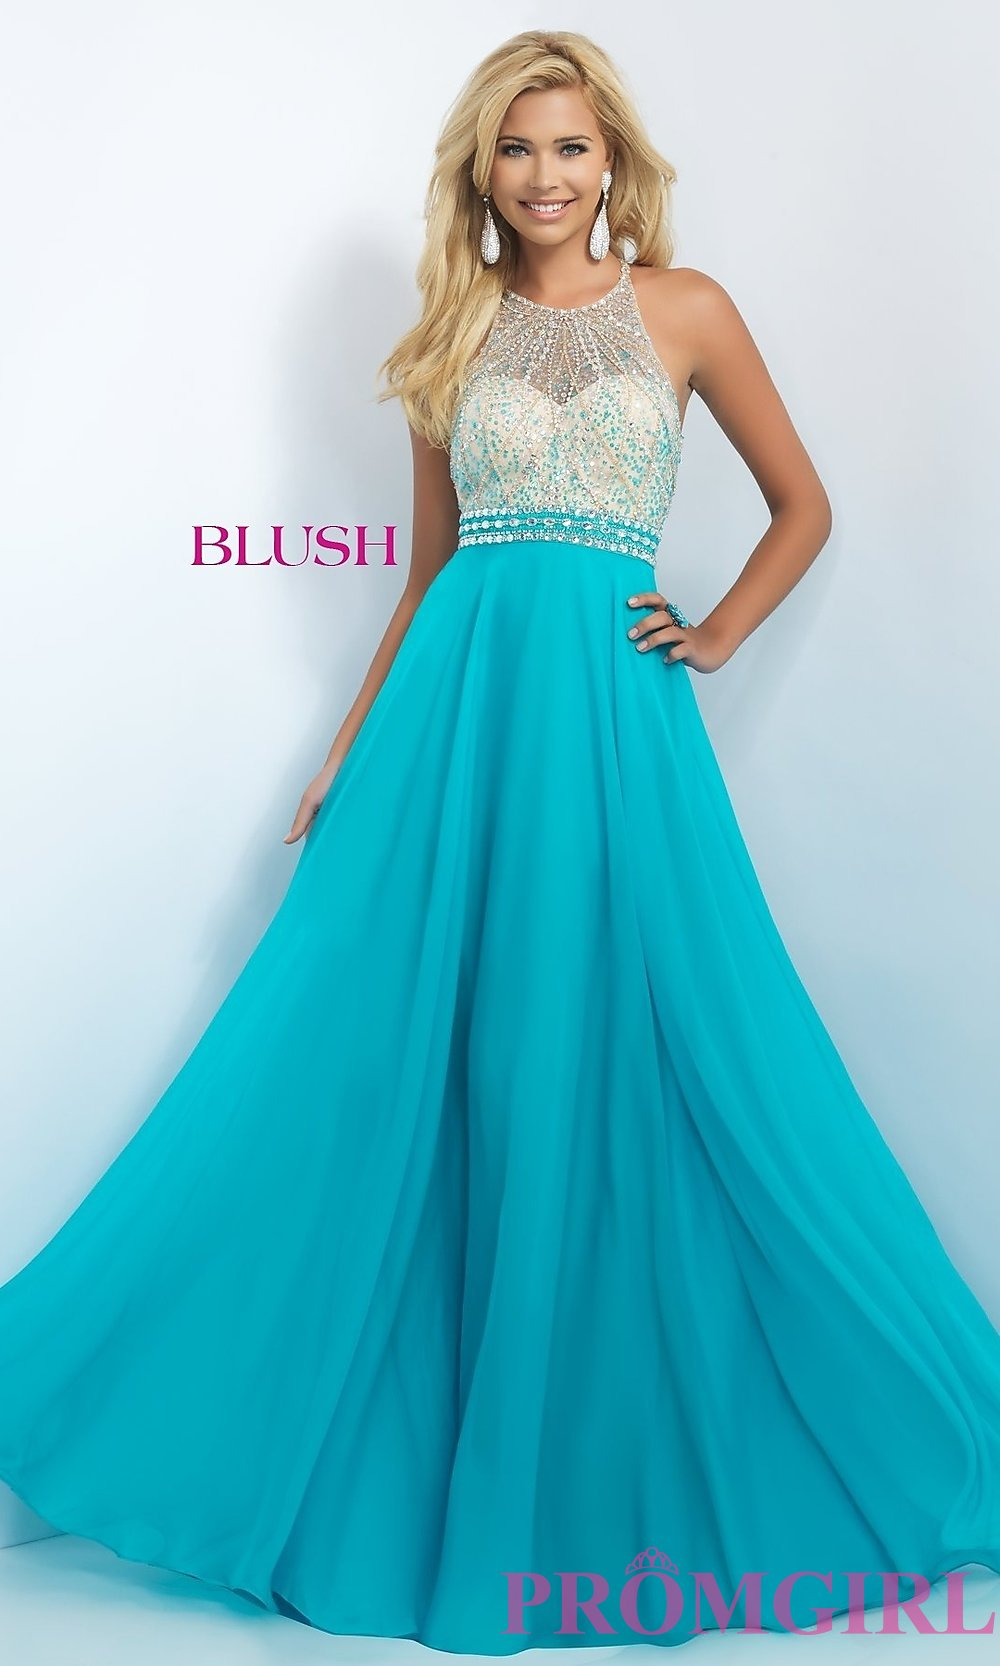 blush prom dresses hover to zoom QEMHIDX